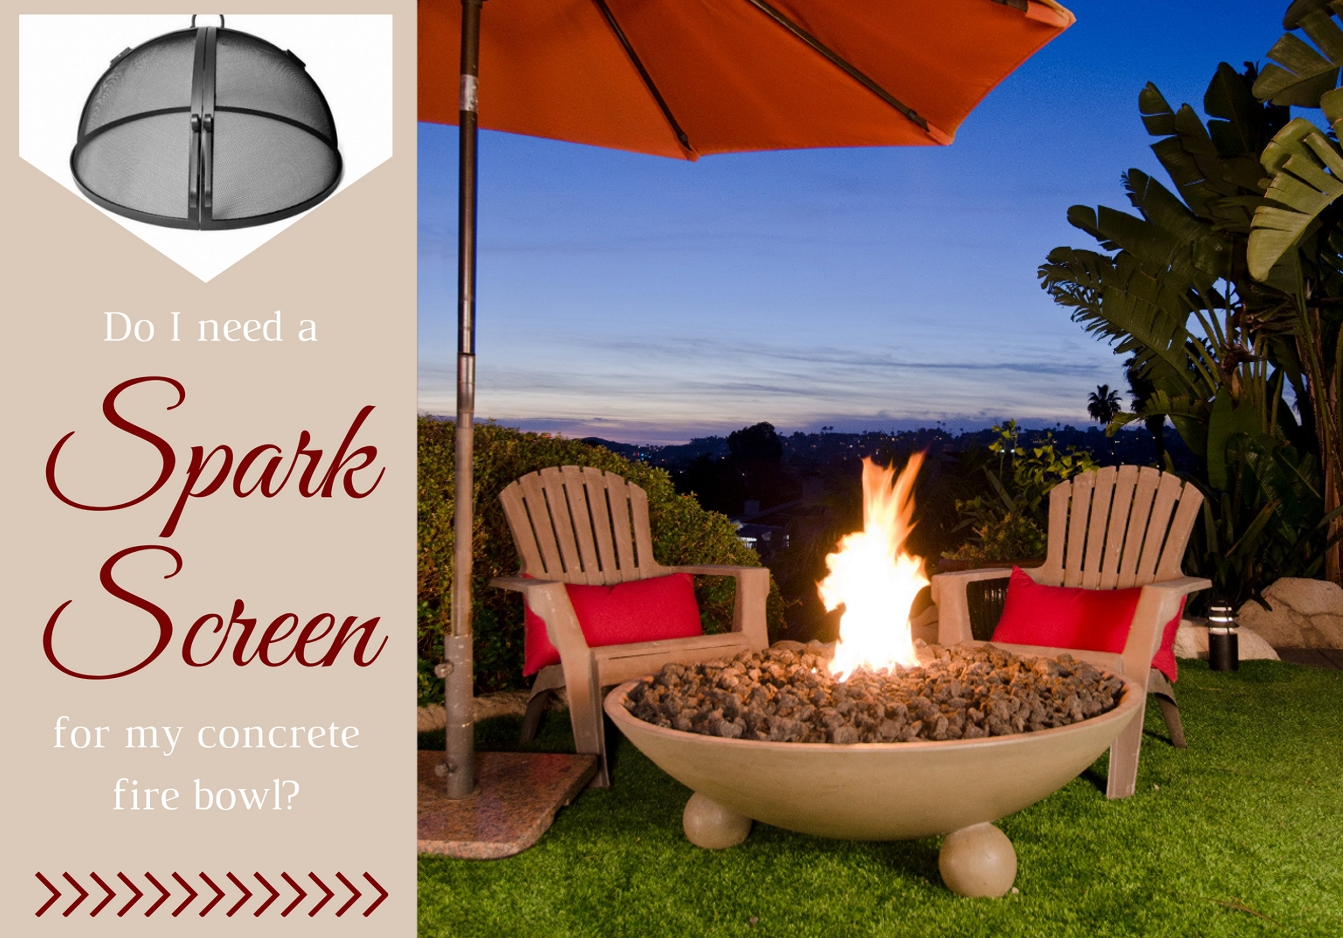 Is a fire pit screen needed for concrete bowls?